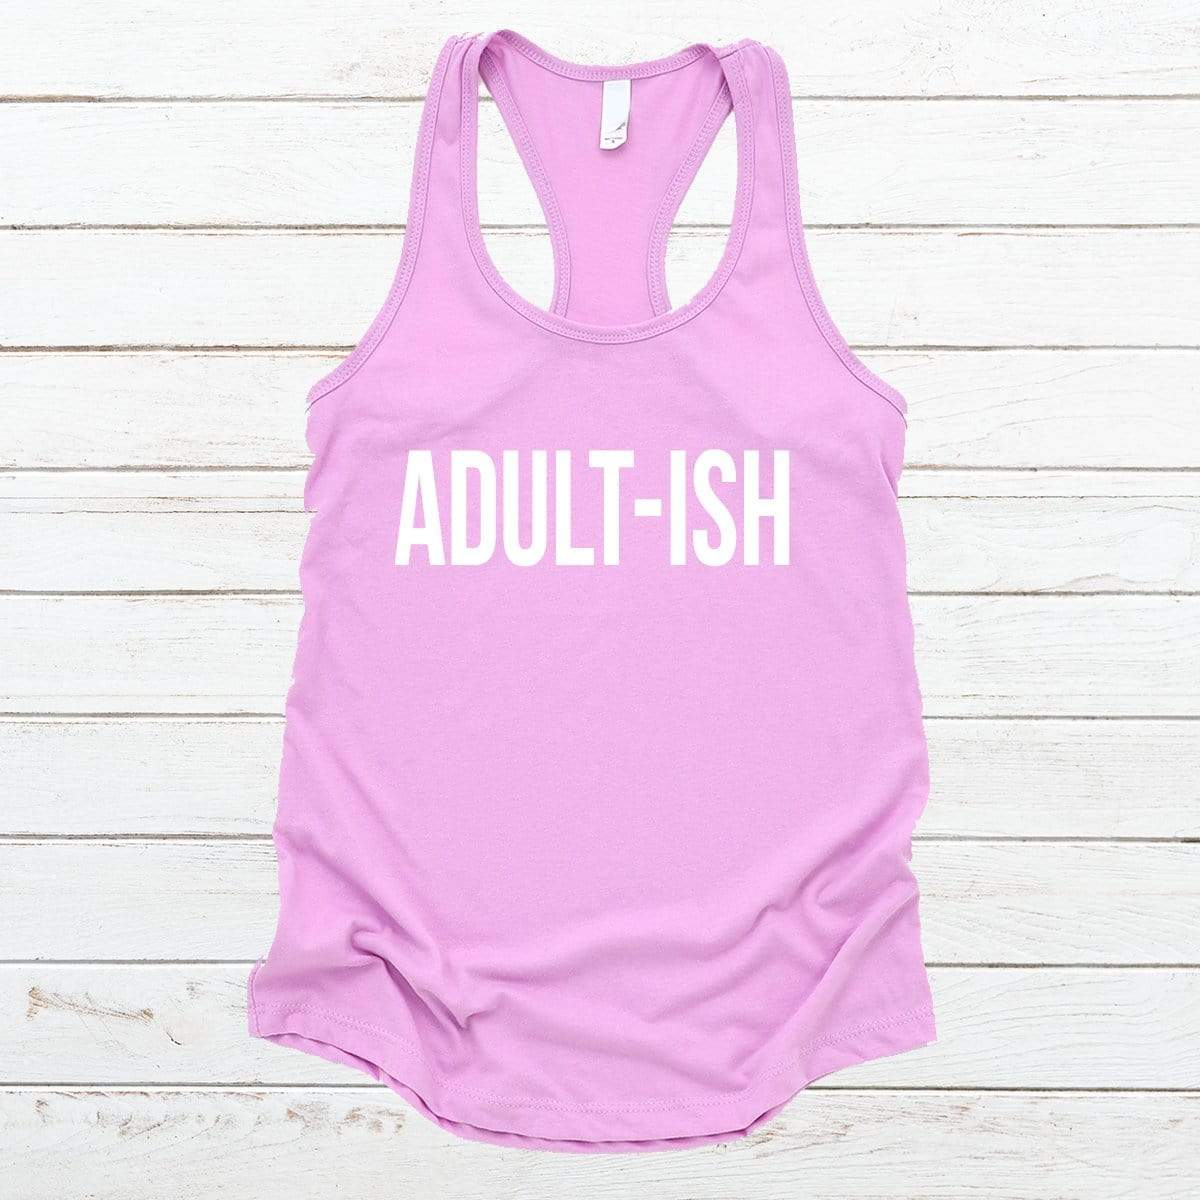 Adult-ish V-Necks And Tank Tops